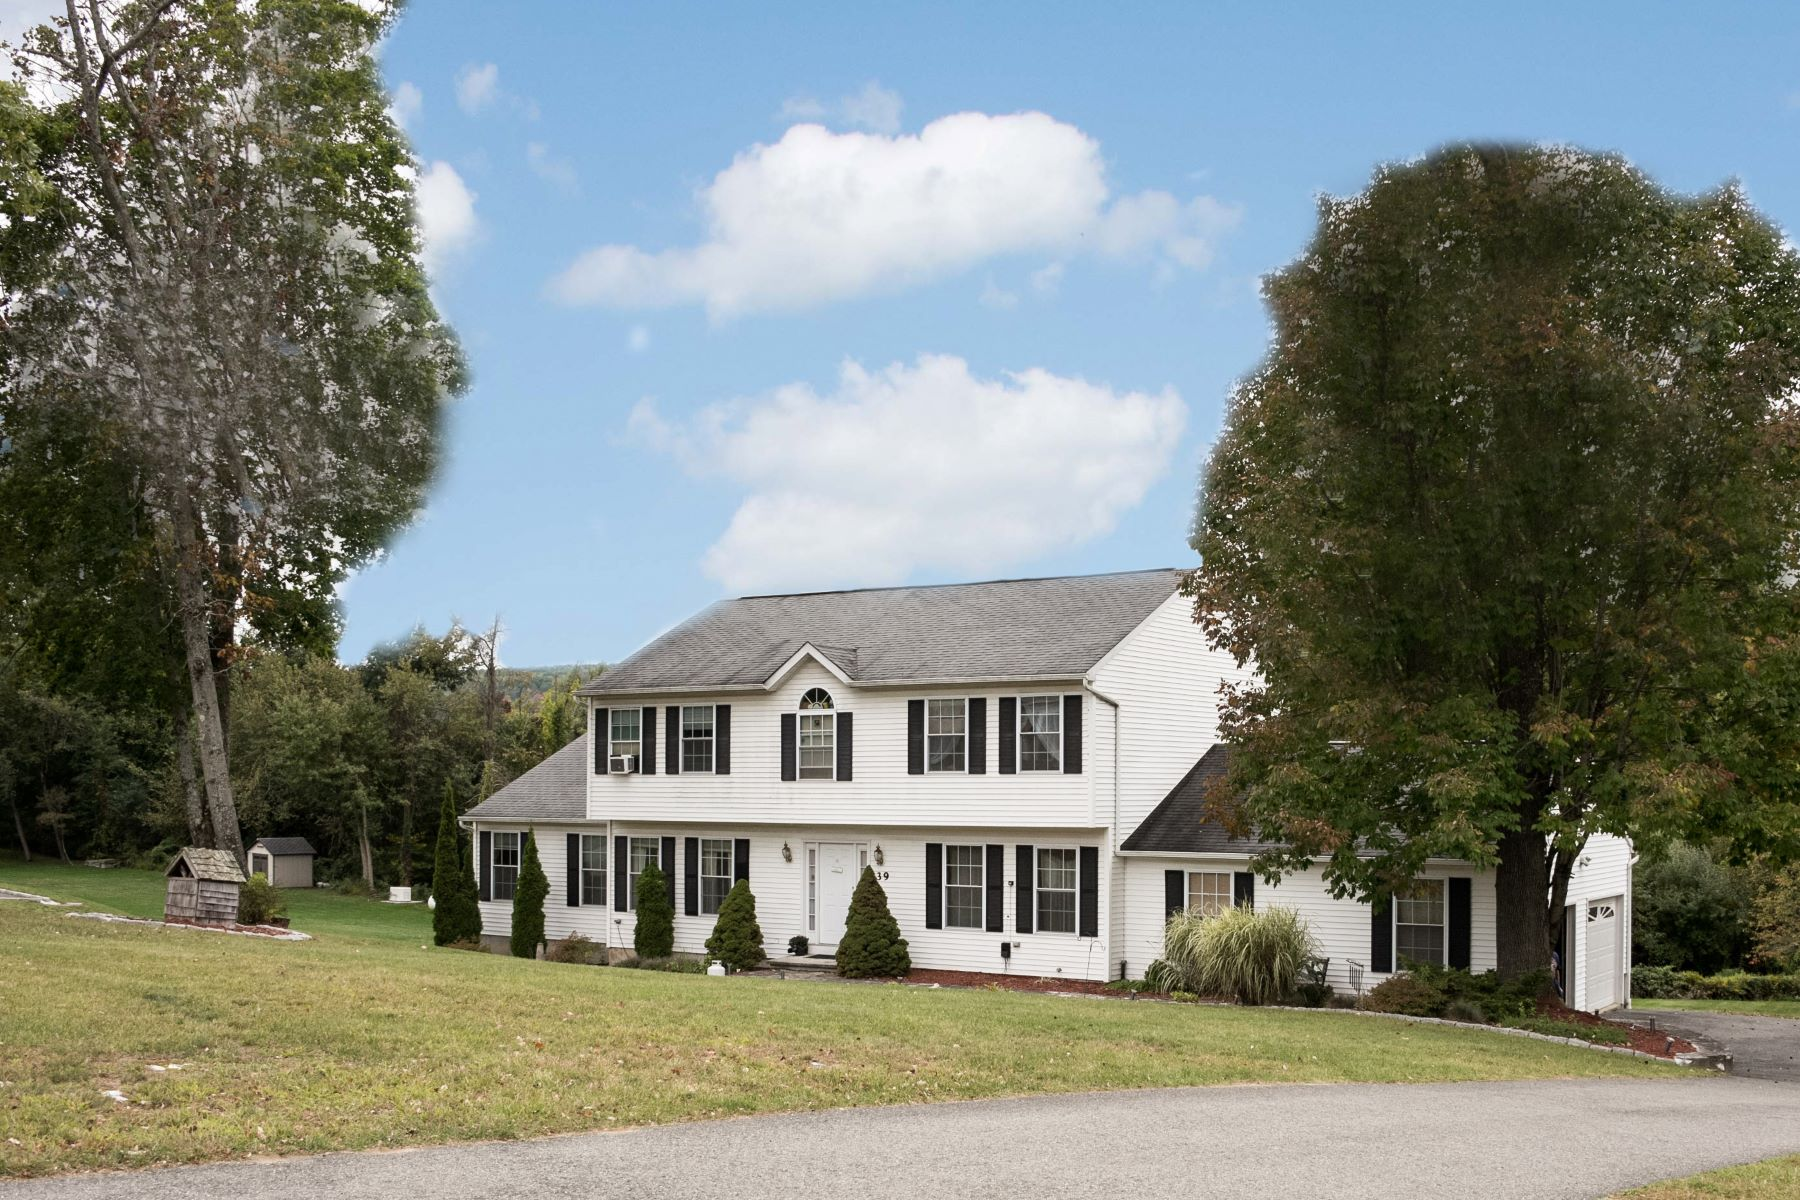 Single Family Home for Sale at New England Charm 39 Turkey Trot Road New Milford, Connecticut 06776 United States